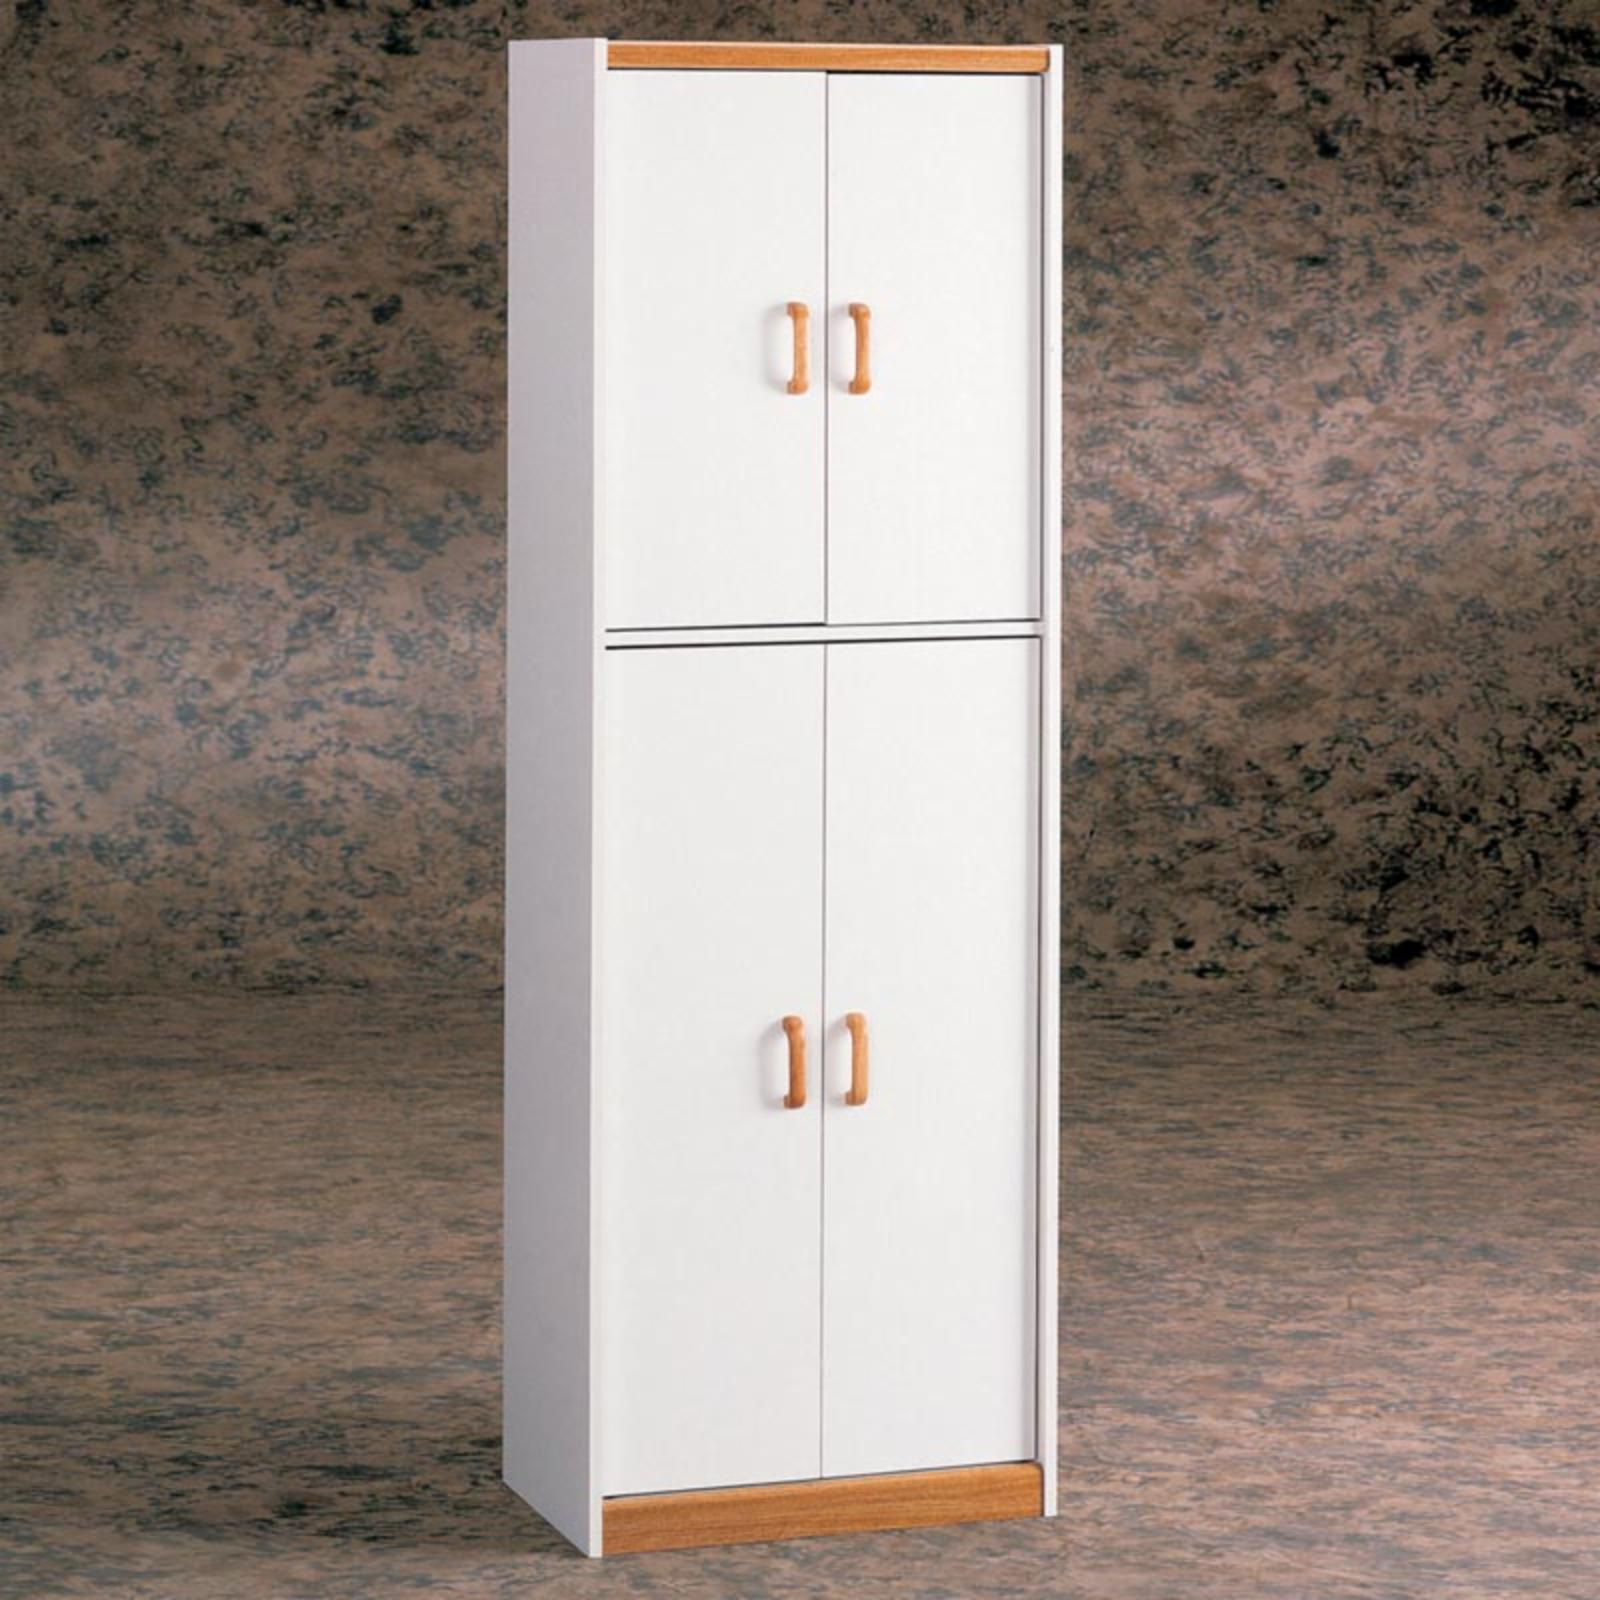 Ameriwood White Deluxe Four Door Pantry Cabinet - 4506